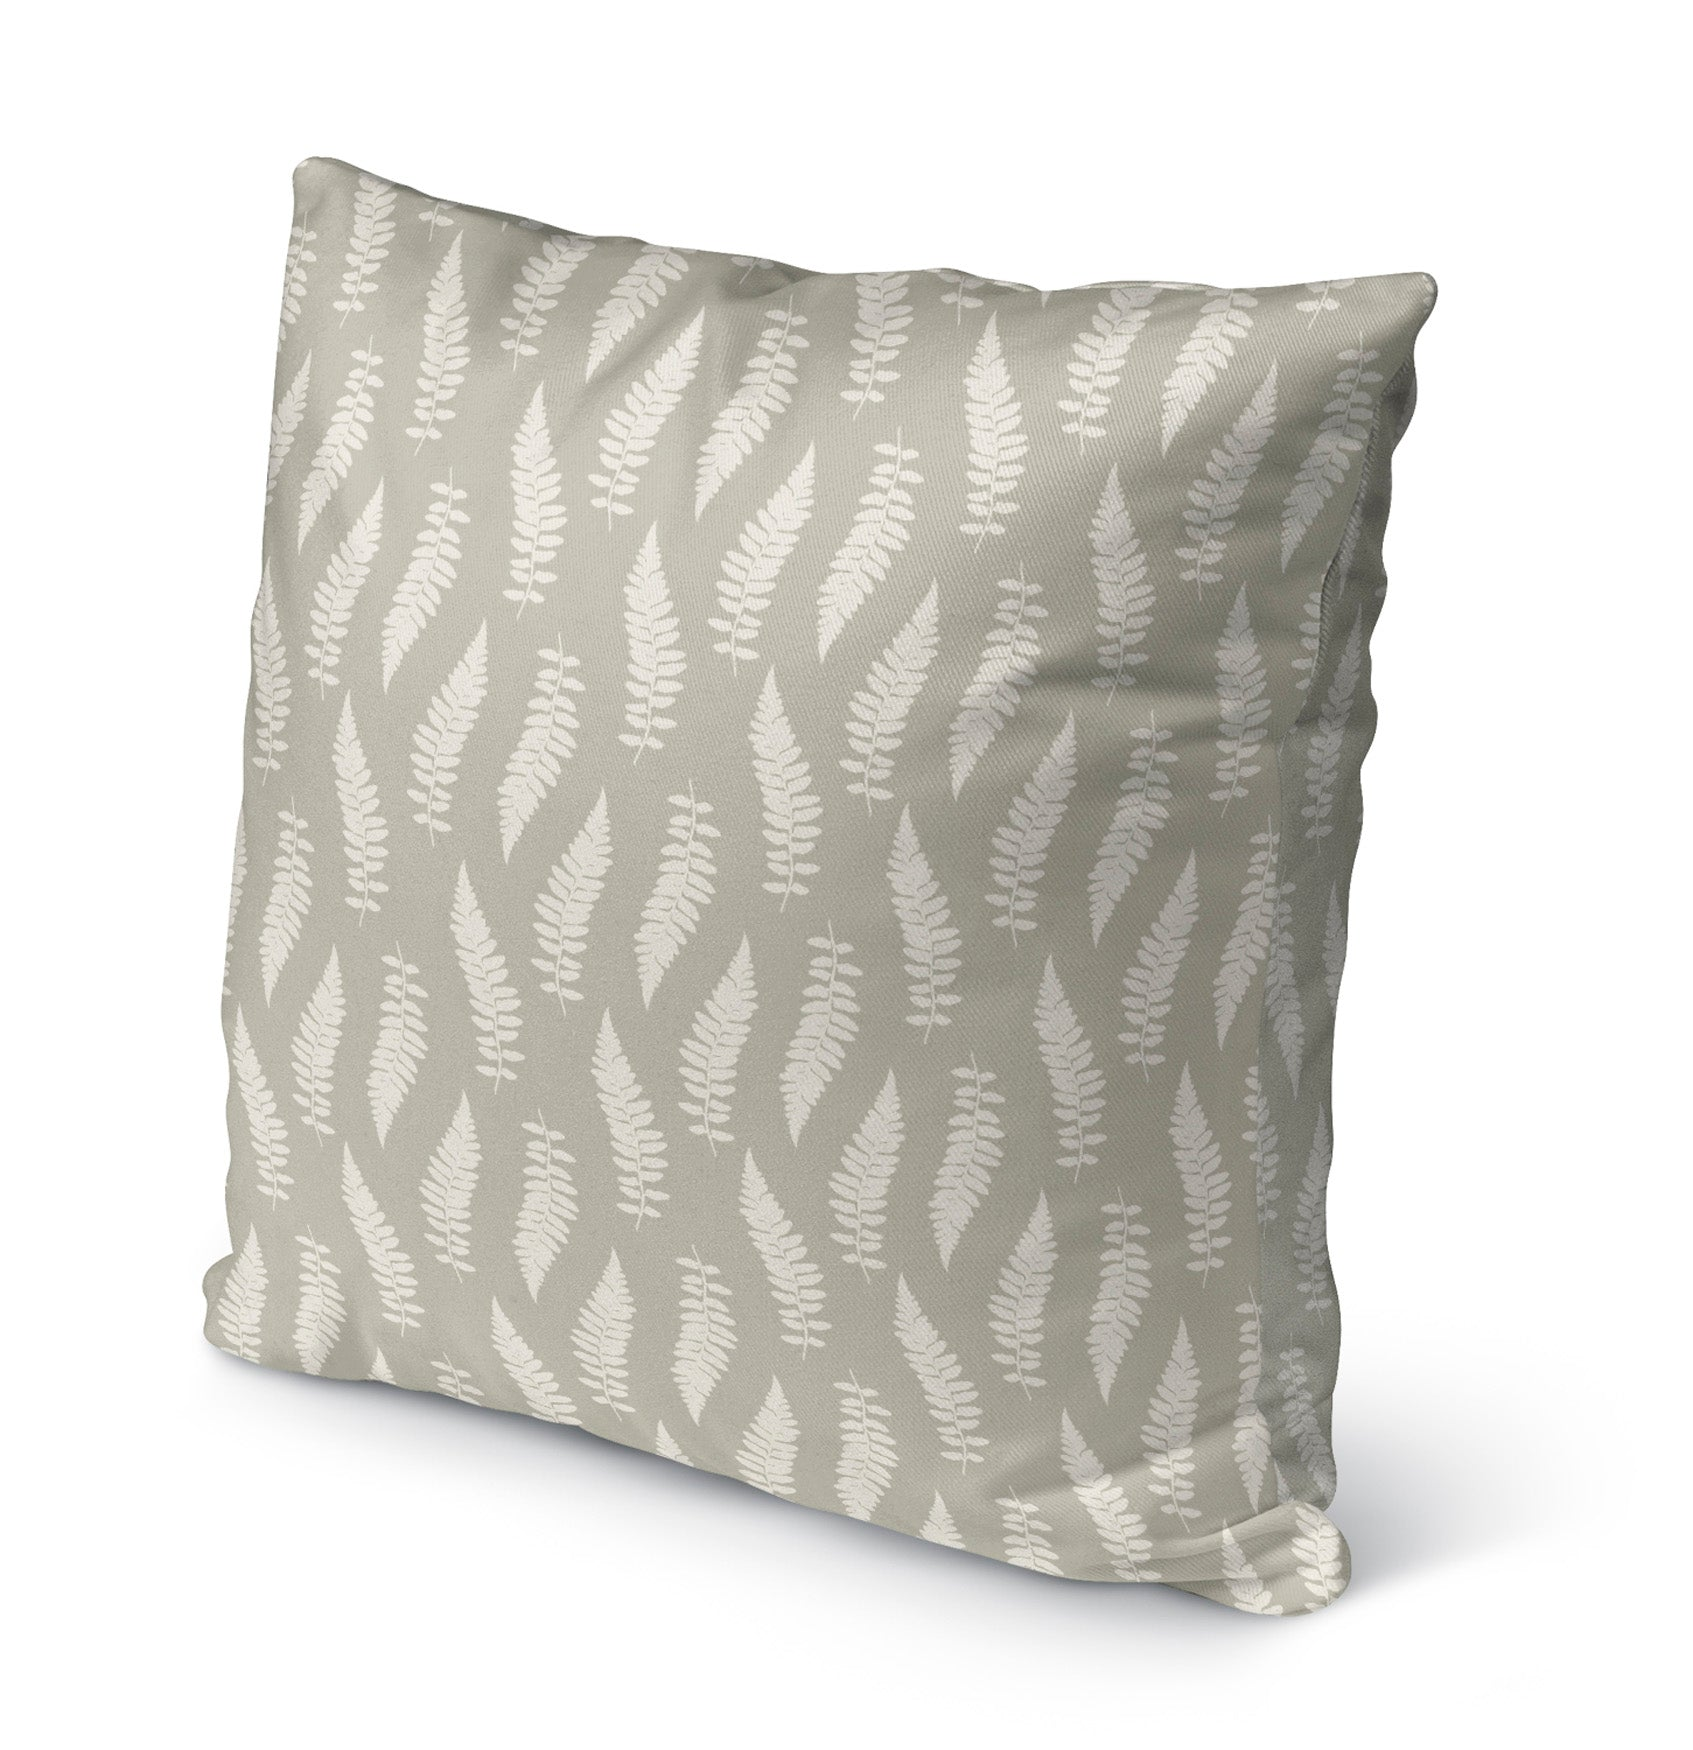 FEATHERS Indoor|Outdoor Pillow By Marina Gutierrez